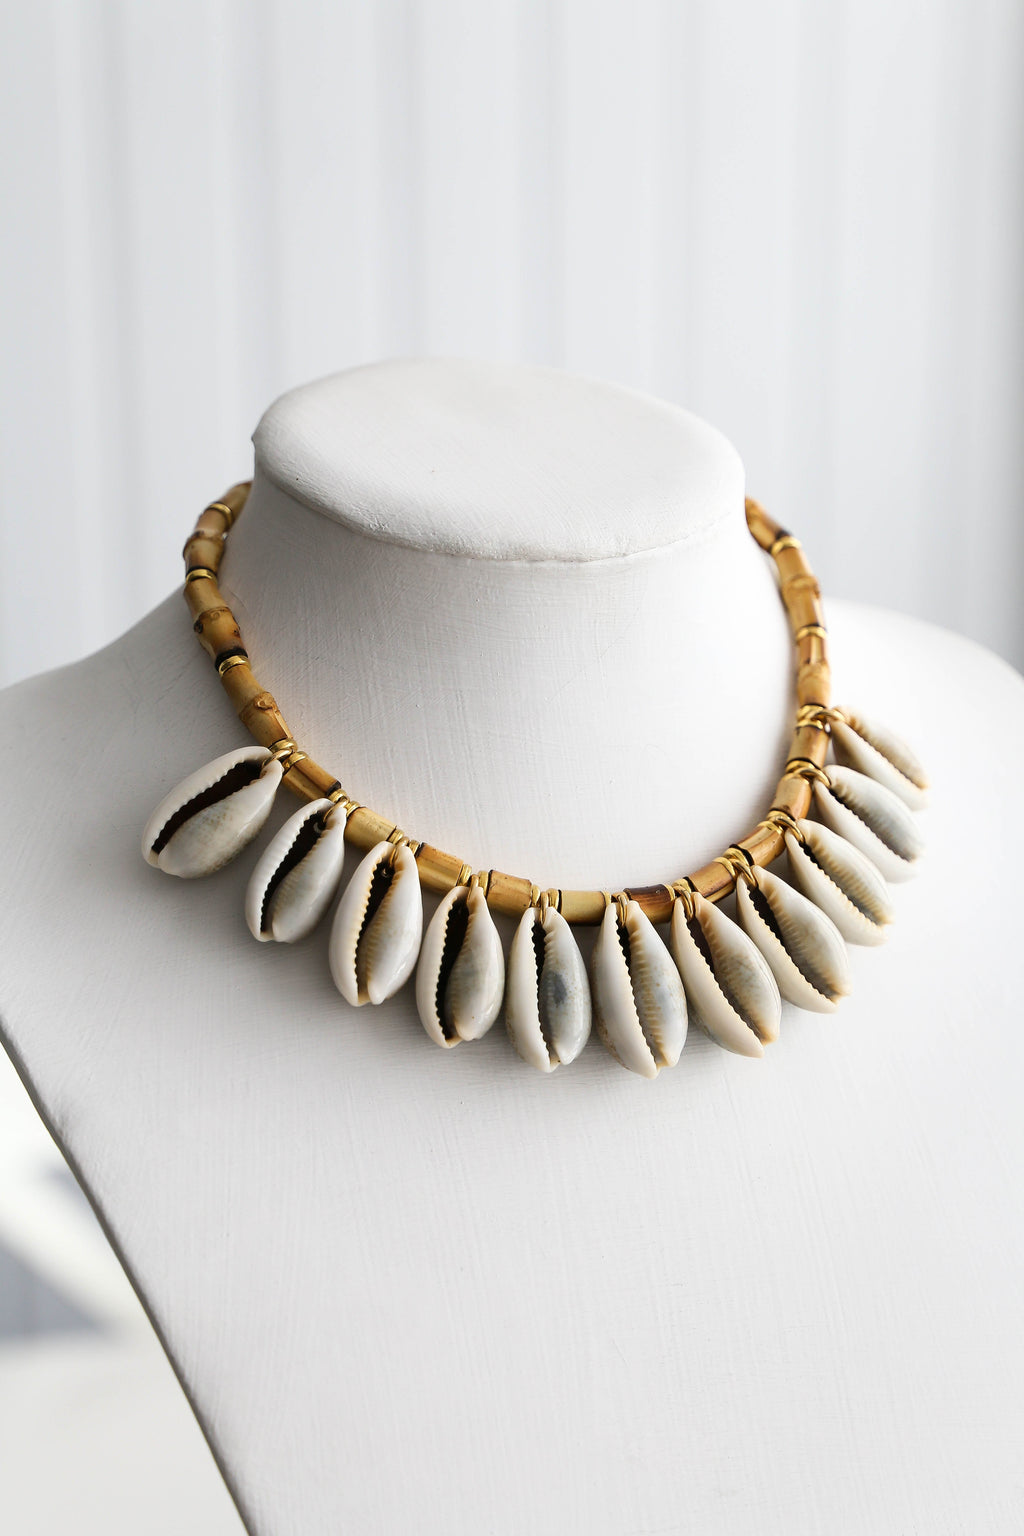 Madagascar Necklace - Boutique Minimaliste